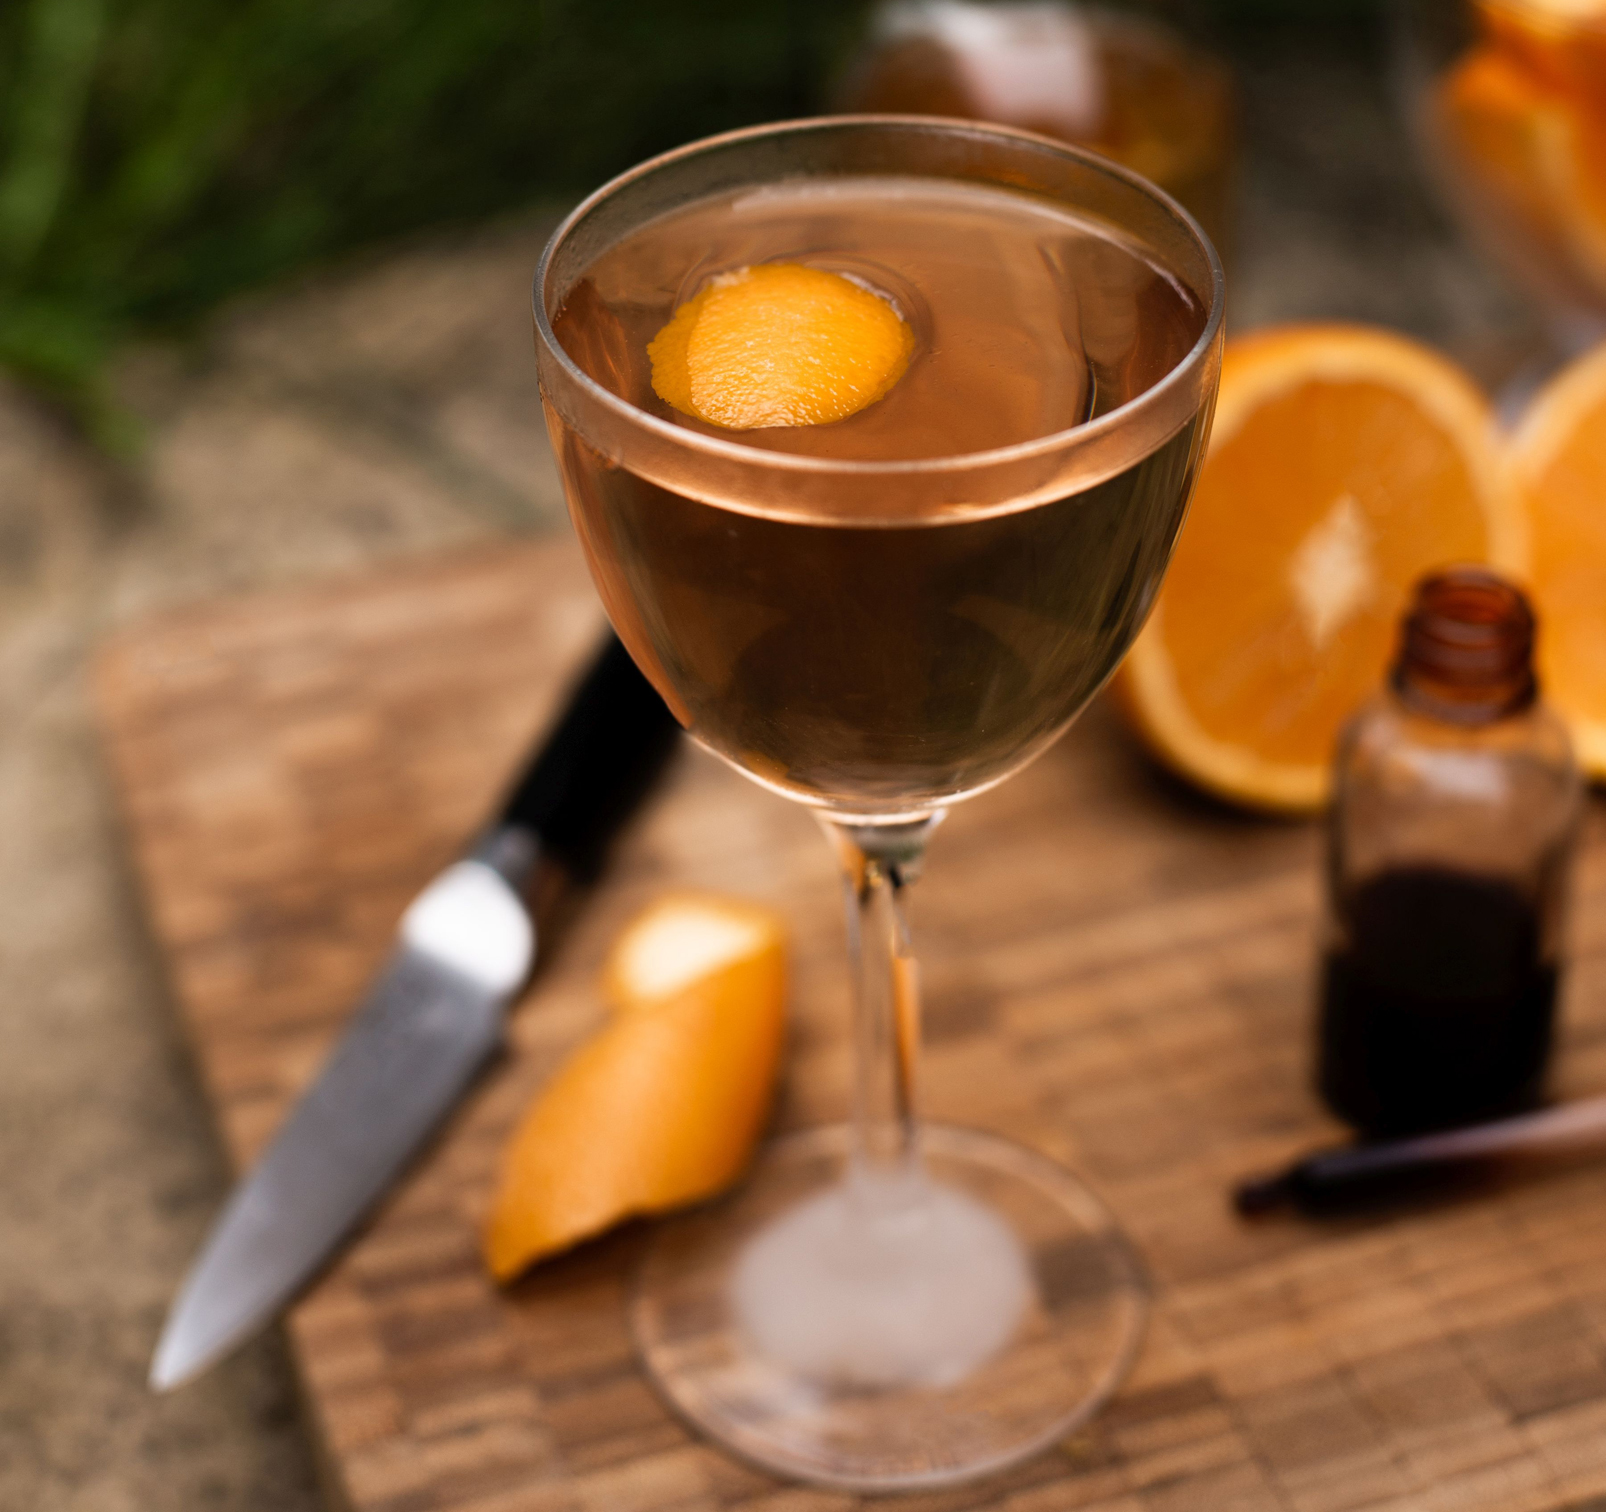 Orange martini cocktail